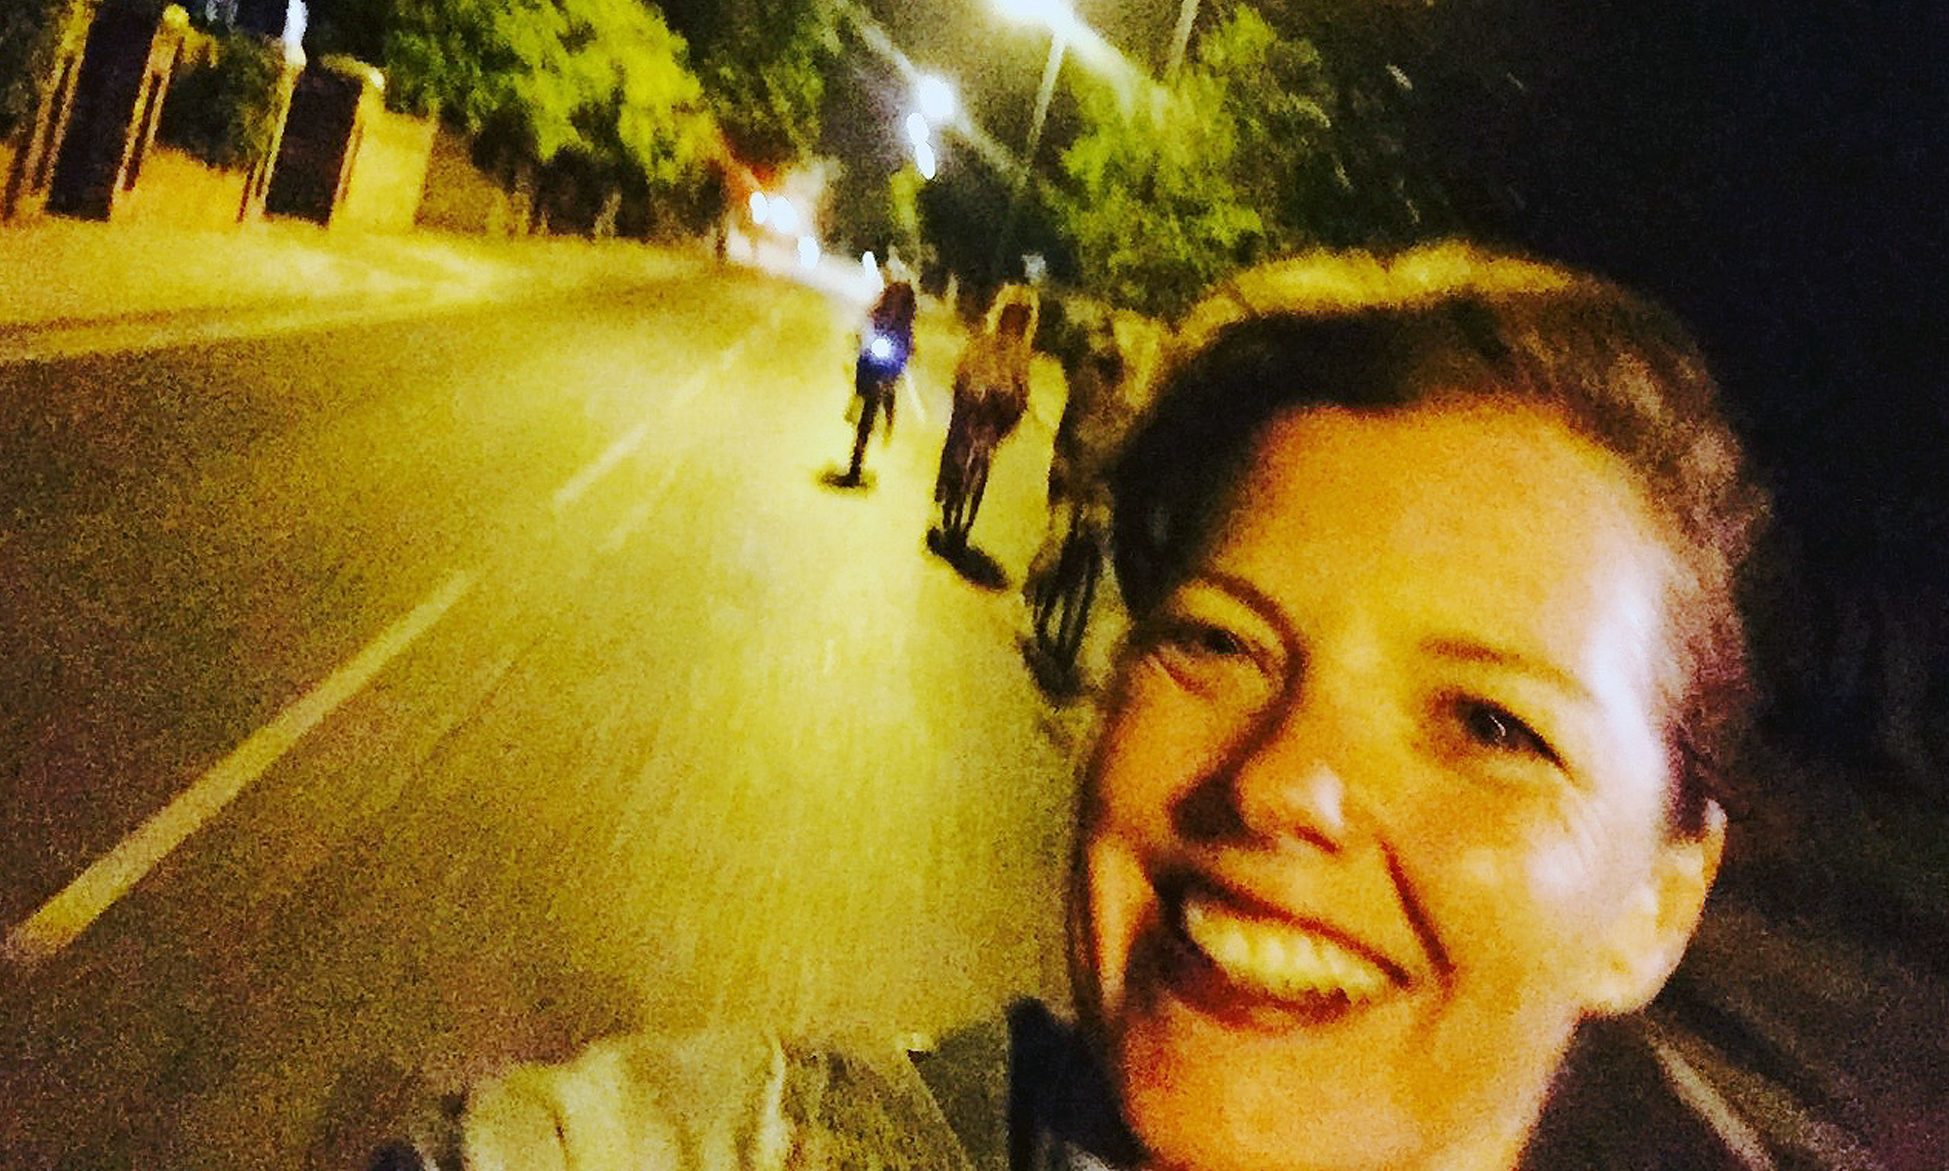 Carmen Greenway taking a selfie moments before she hit a bumpy patch of road and lost control.